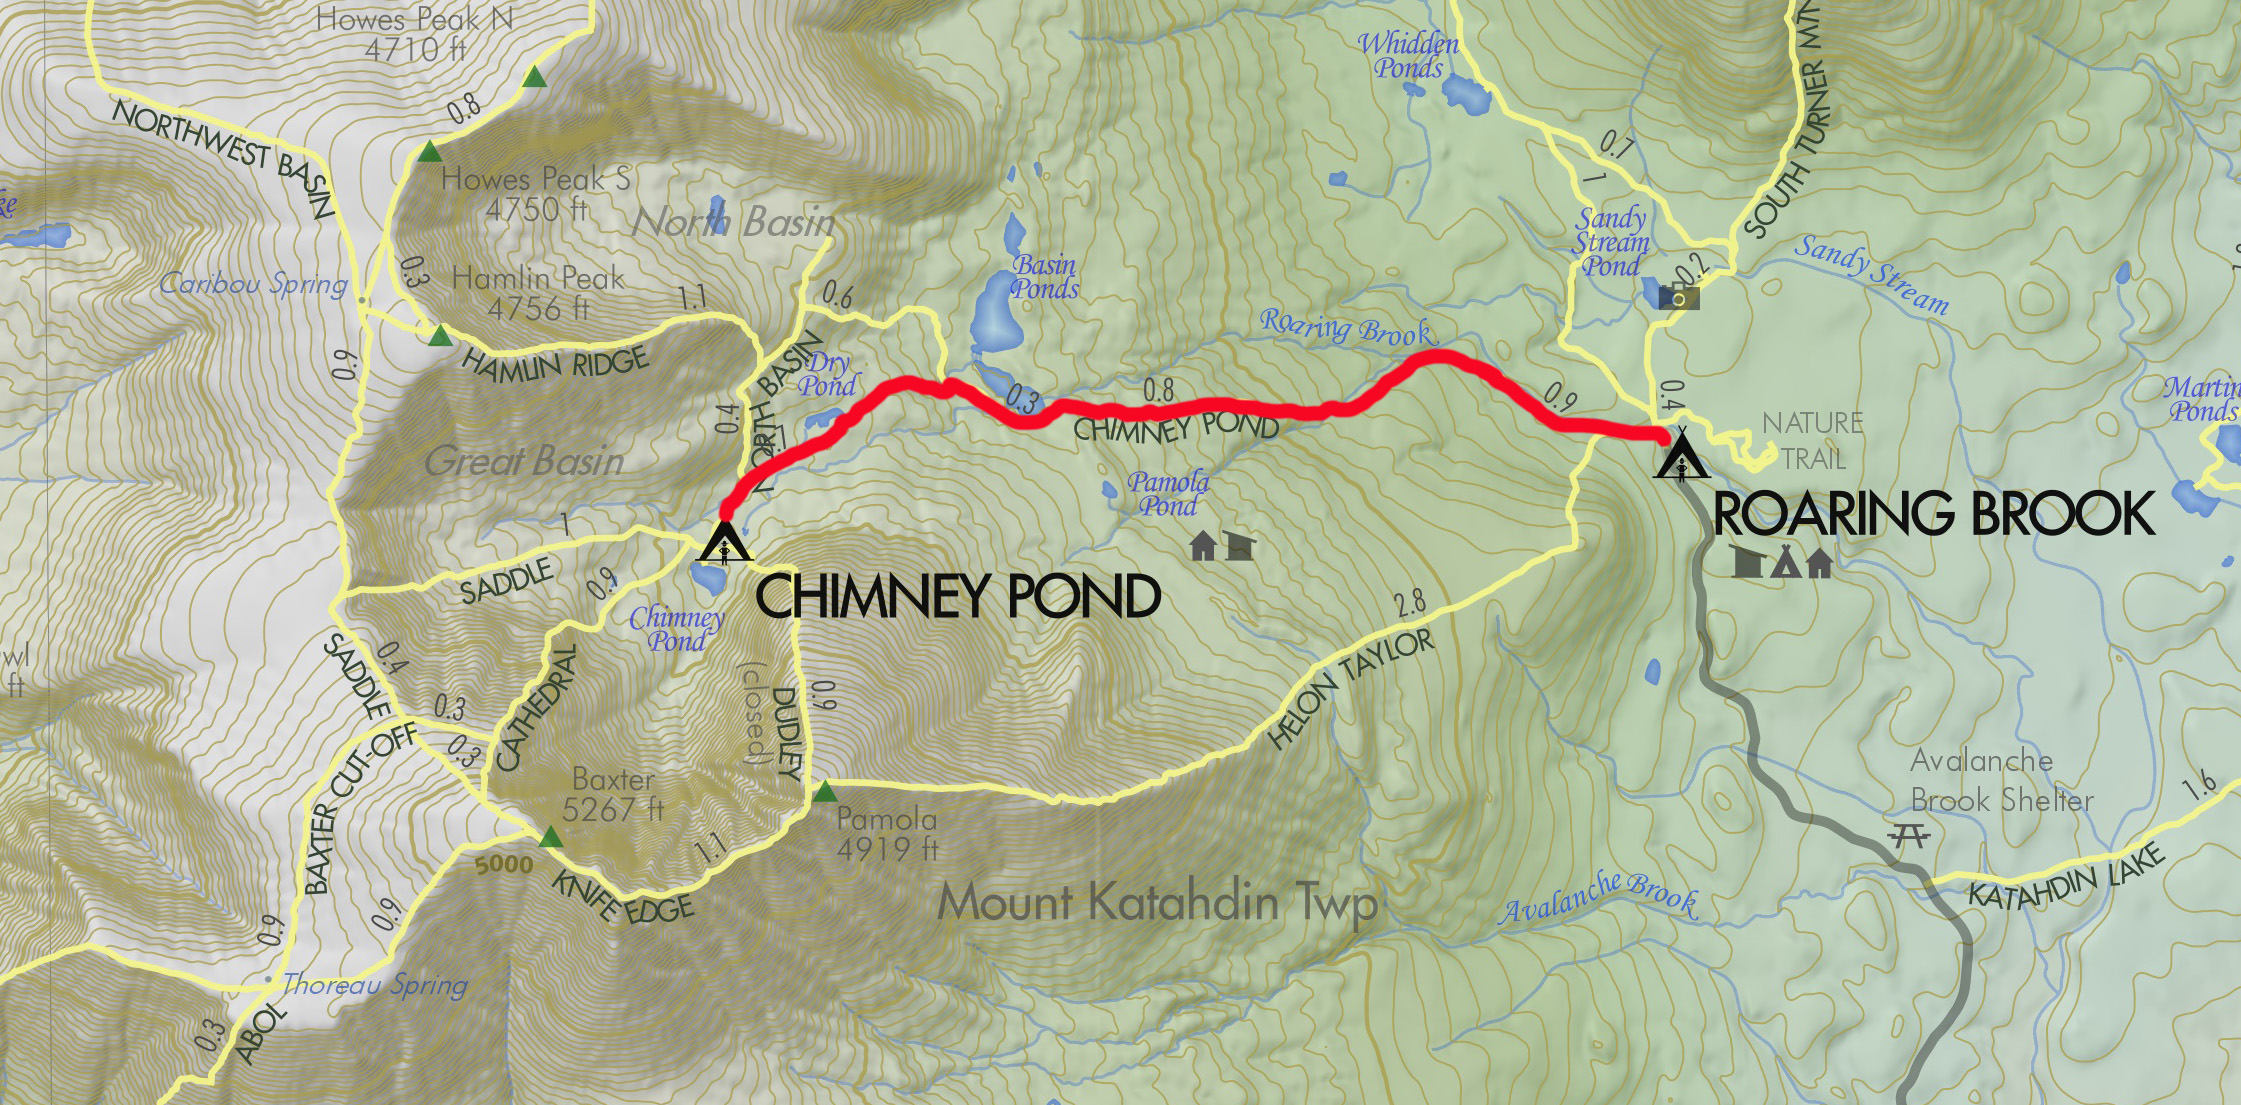 The route for my hike in to Chimney Pond campground